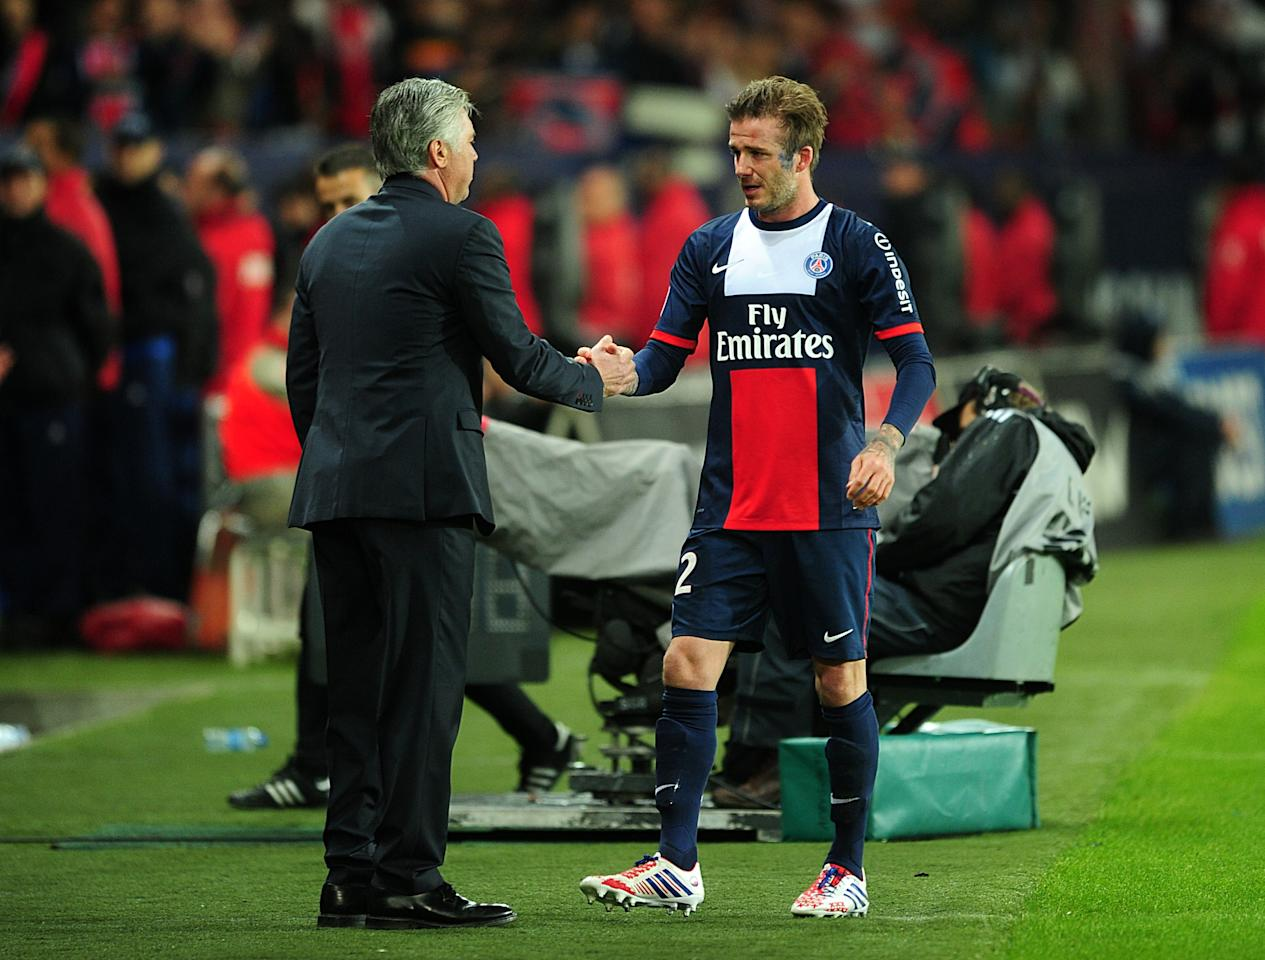 Paris Saint-Germain's David Beckham (right) is substituted and shakes hands with manager Carlo Ancelotti